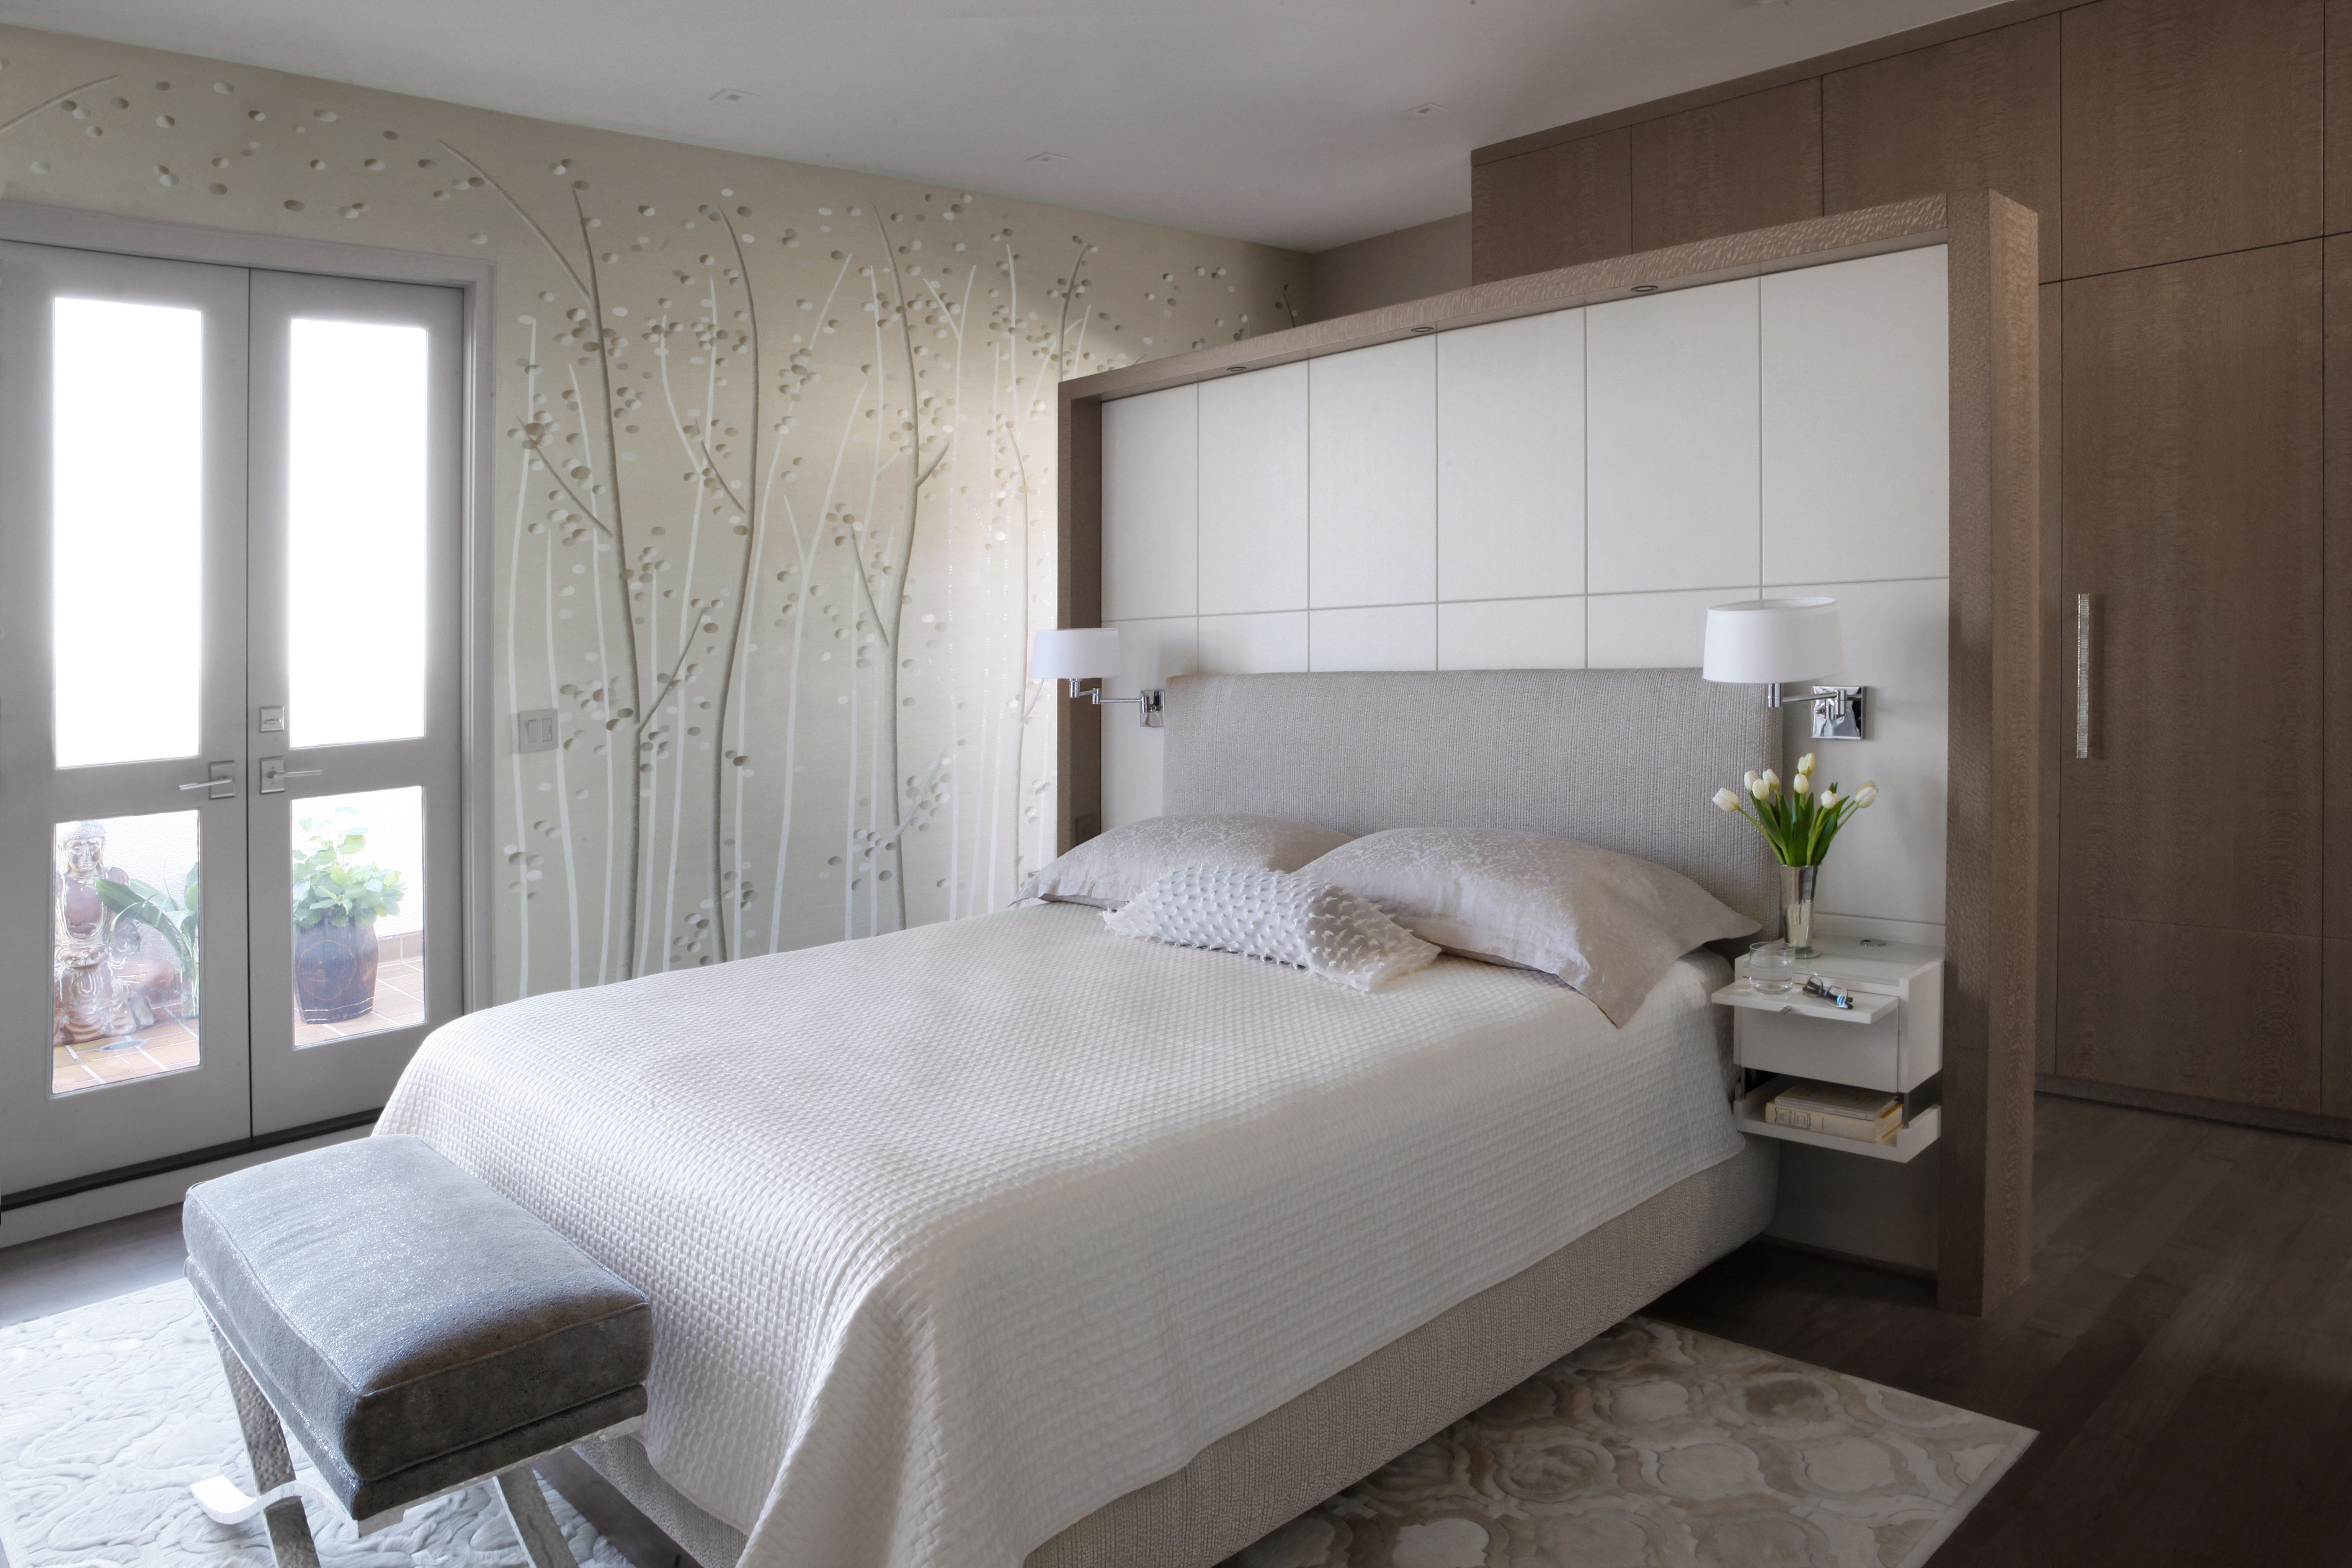 Telegraph Terrace Condominium San Francisco Bed Floating In Middle Of Room Bed In Middle Of Room Bedroom Wall Designs Bedroom Design